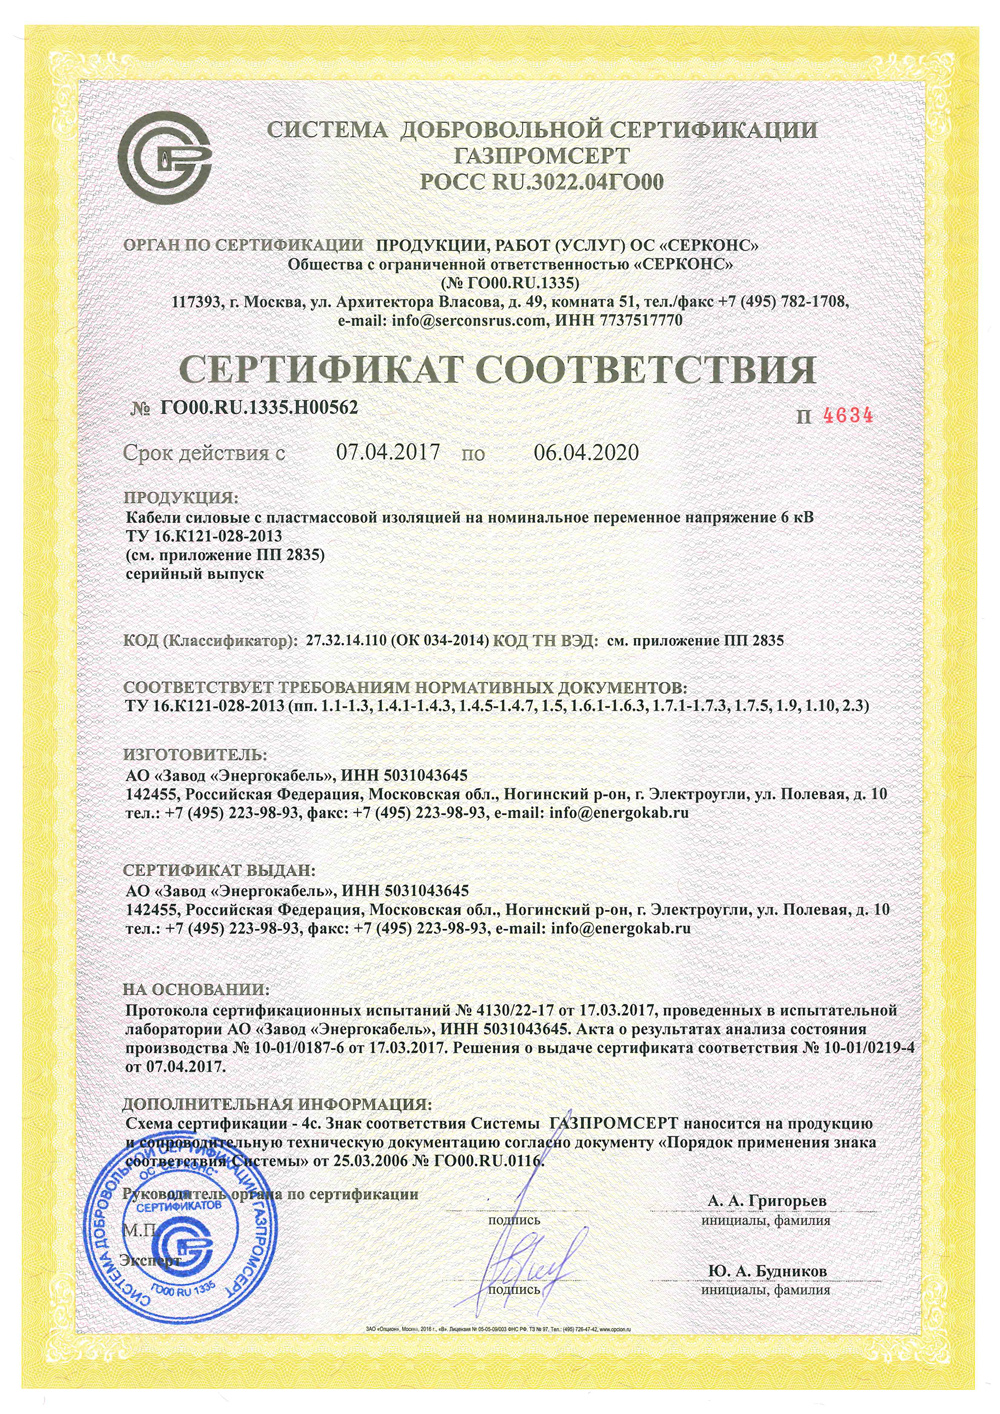 Certificate of Conformity No. ГО00.RU.1335.Н00562. Power cables with plastic insulation for rated alternating voltage 6 kV, Specifications 16.K121-028-2013.